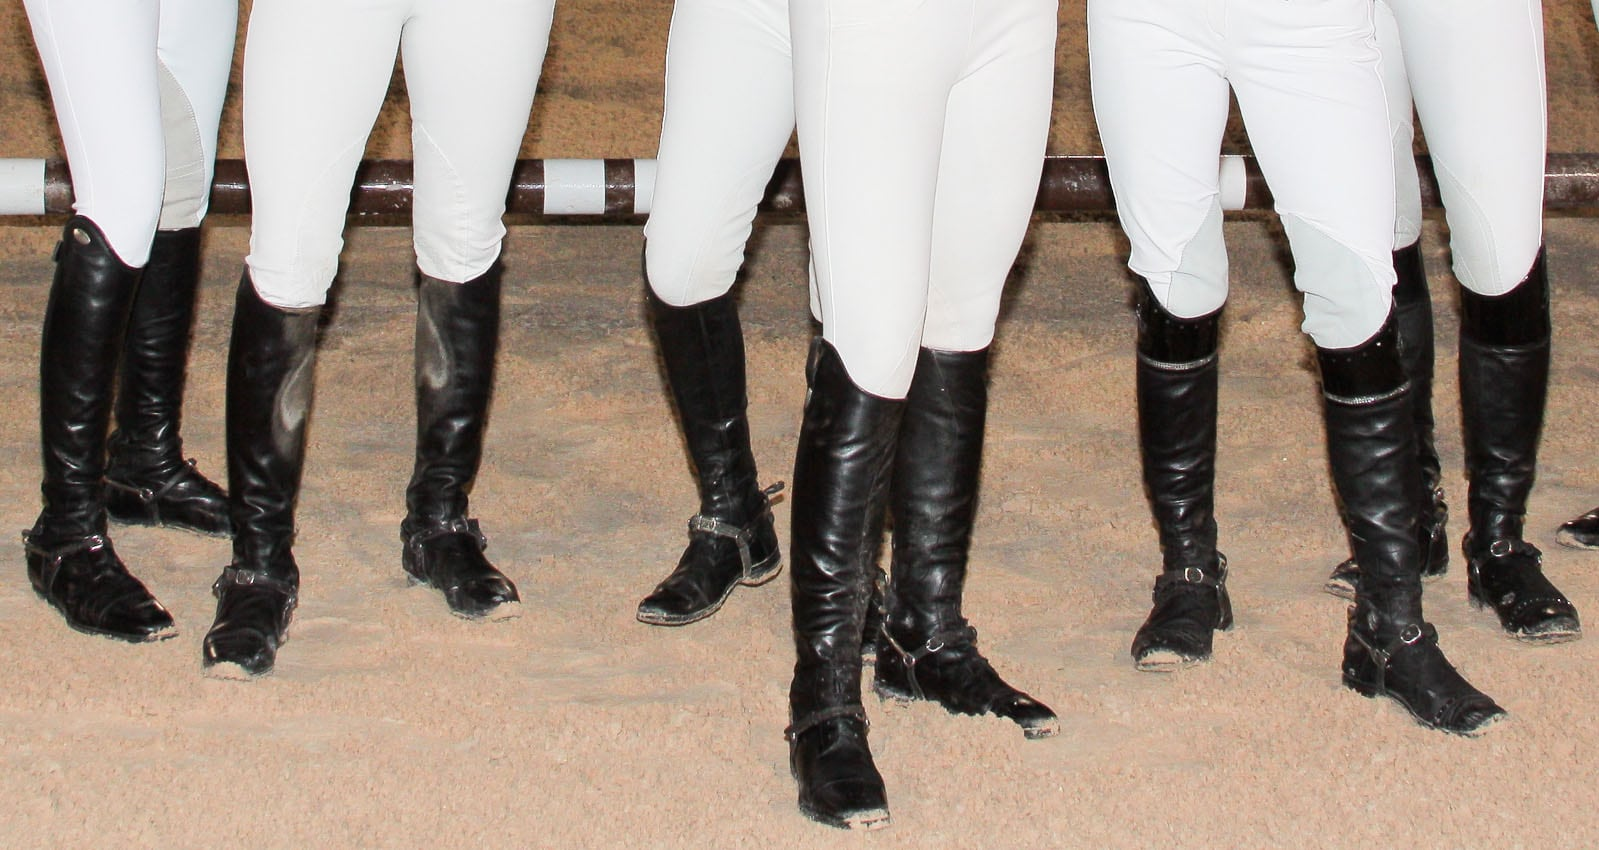 Add an equestrian twist to your look with leather riding boots